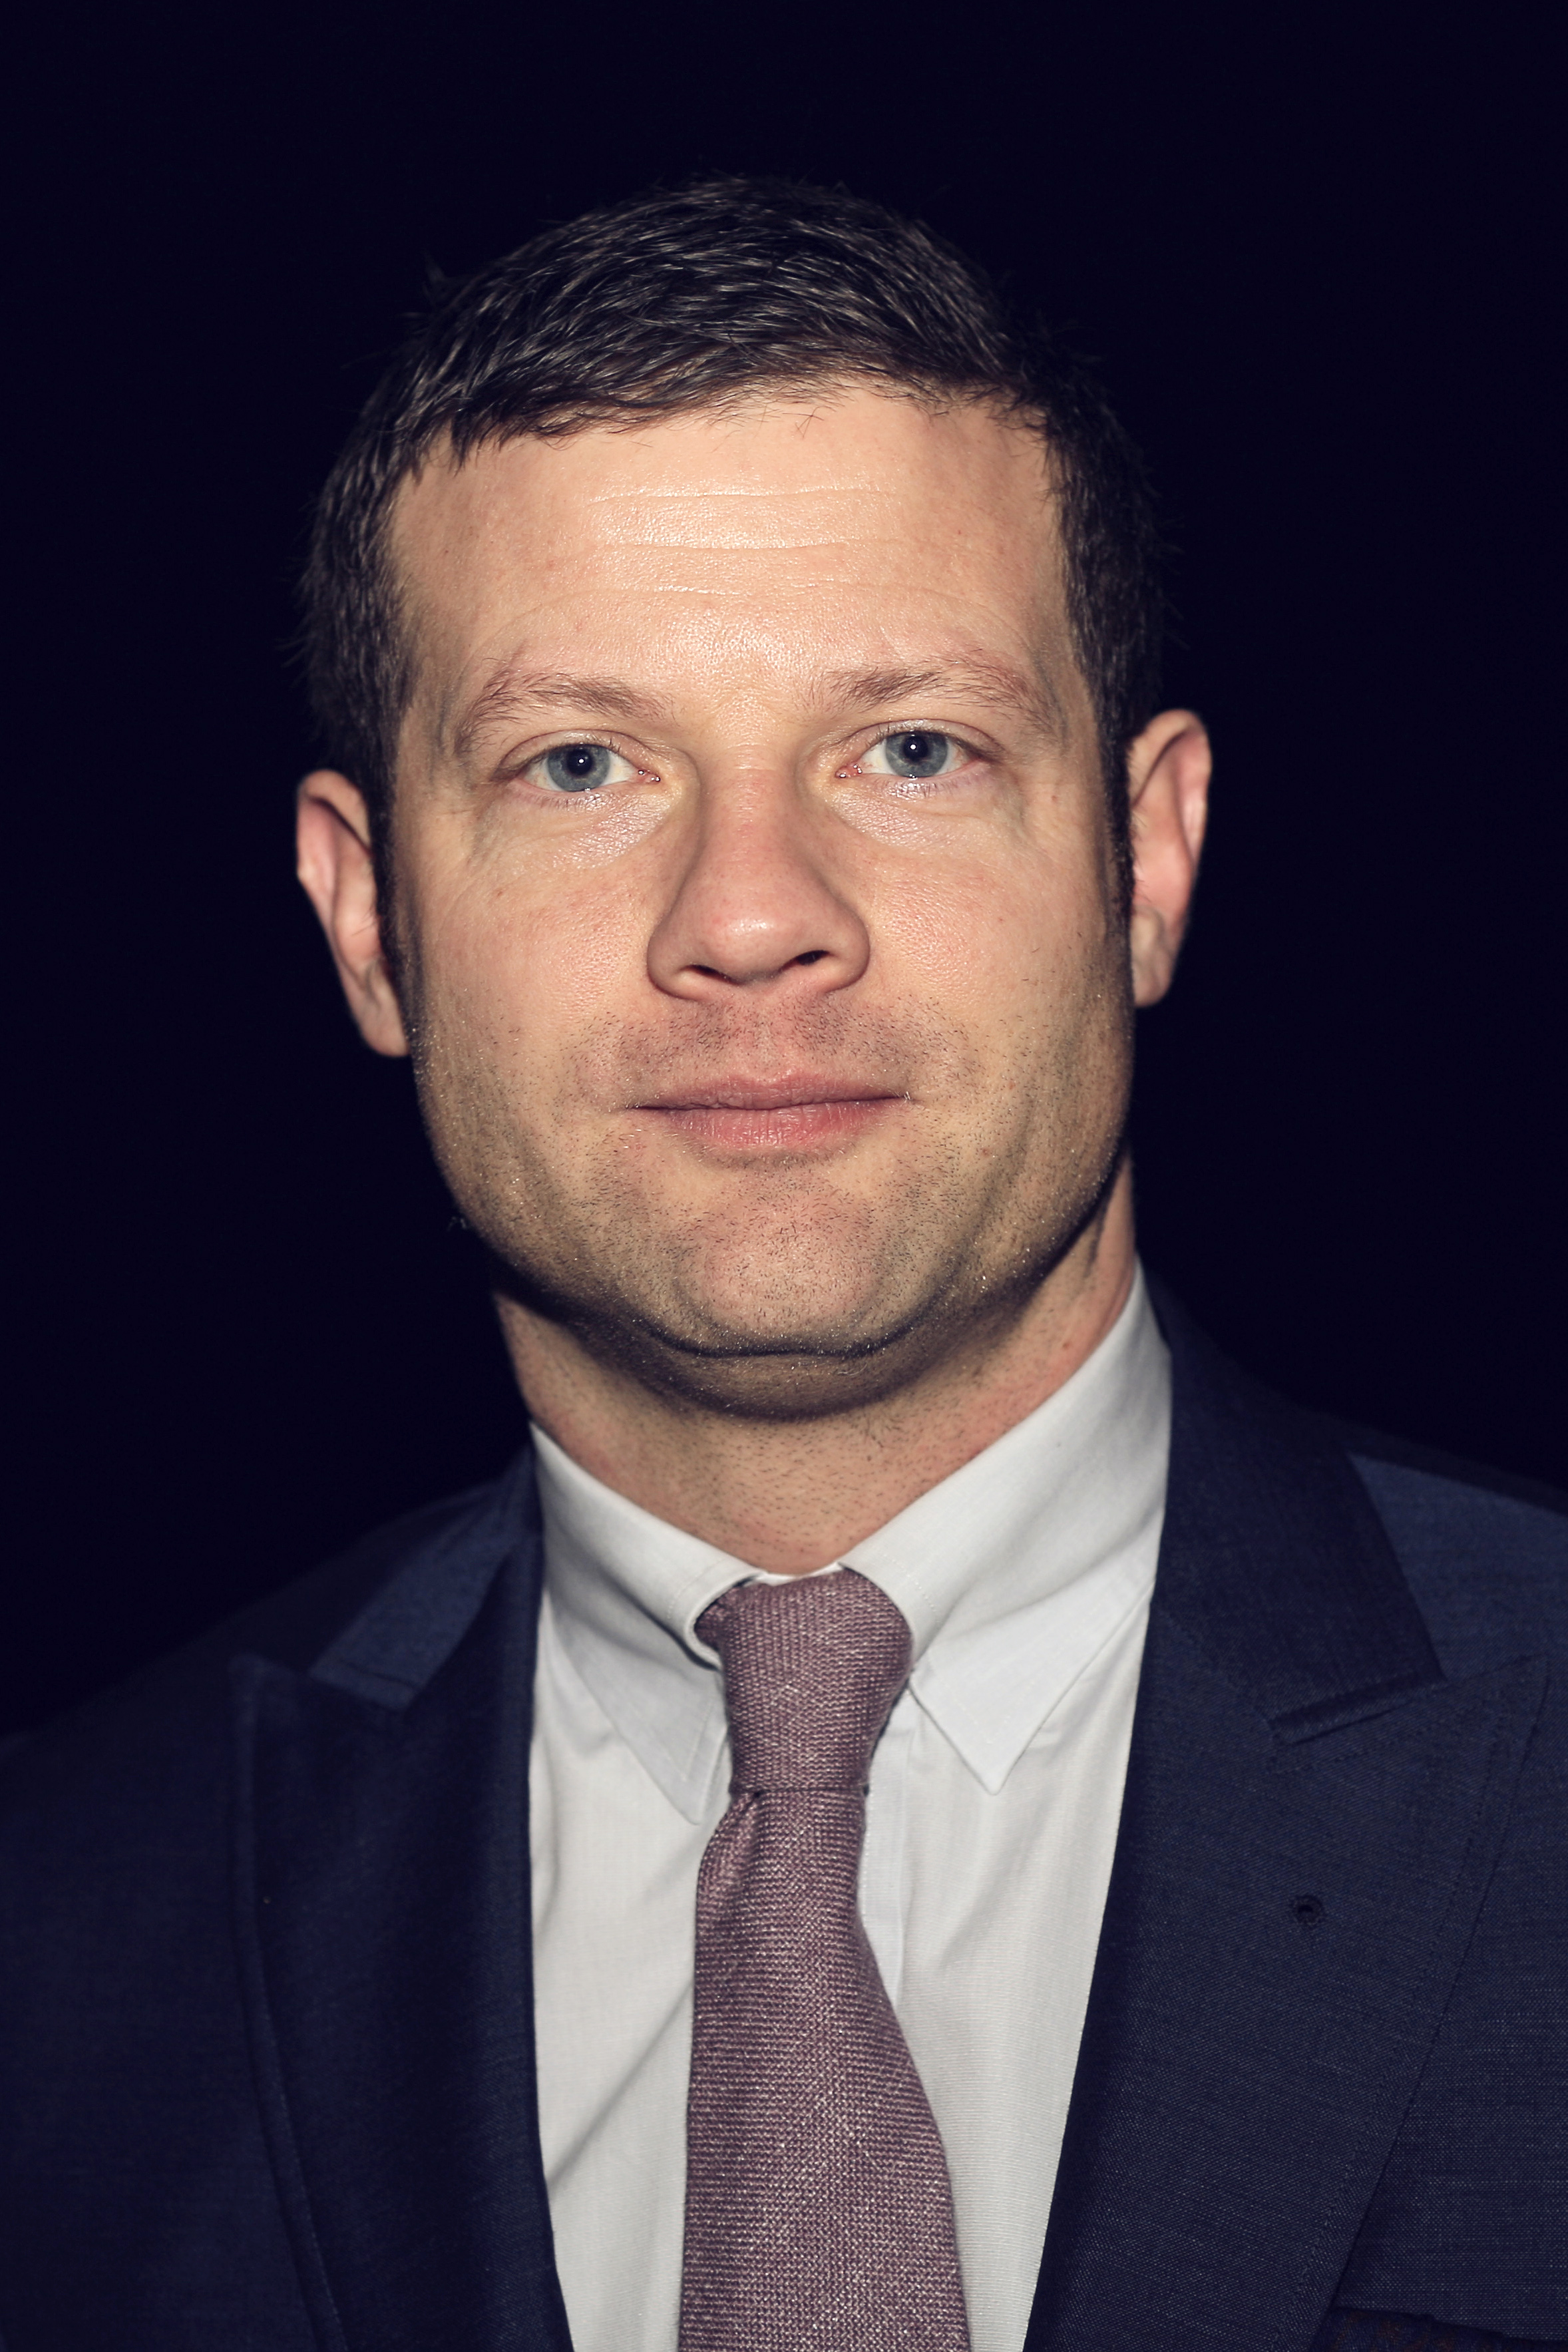 Dermot o leary photos Dermot O leary Pictures Photo Gallery Page 7 m